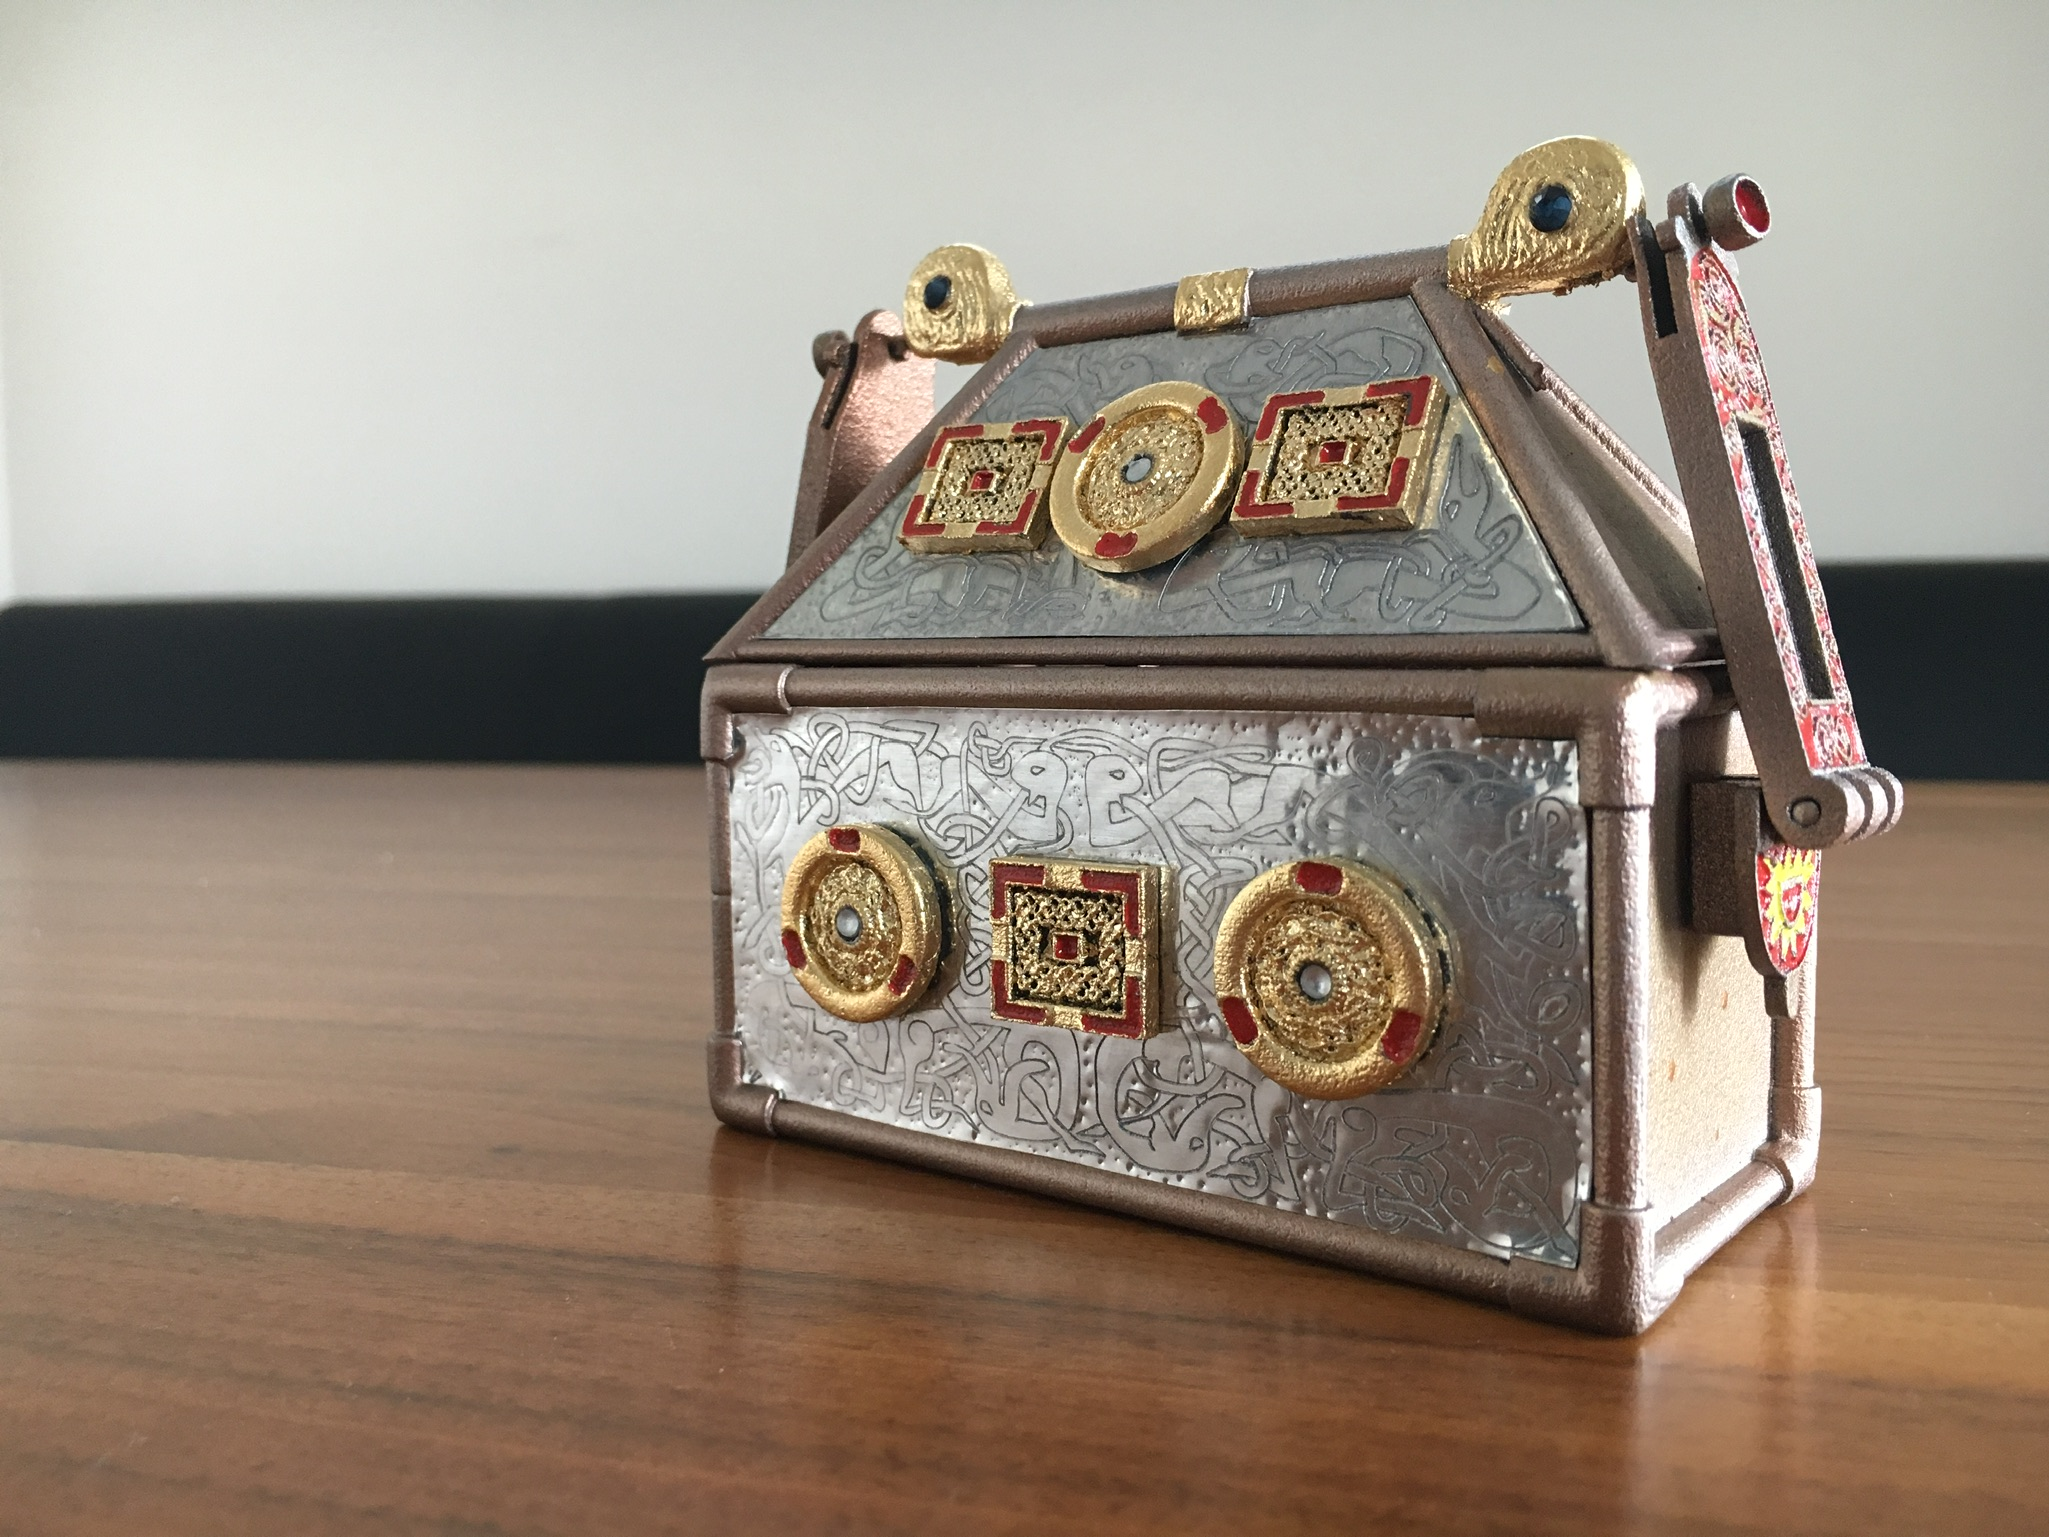 Replica Monymusk Reliquary front view